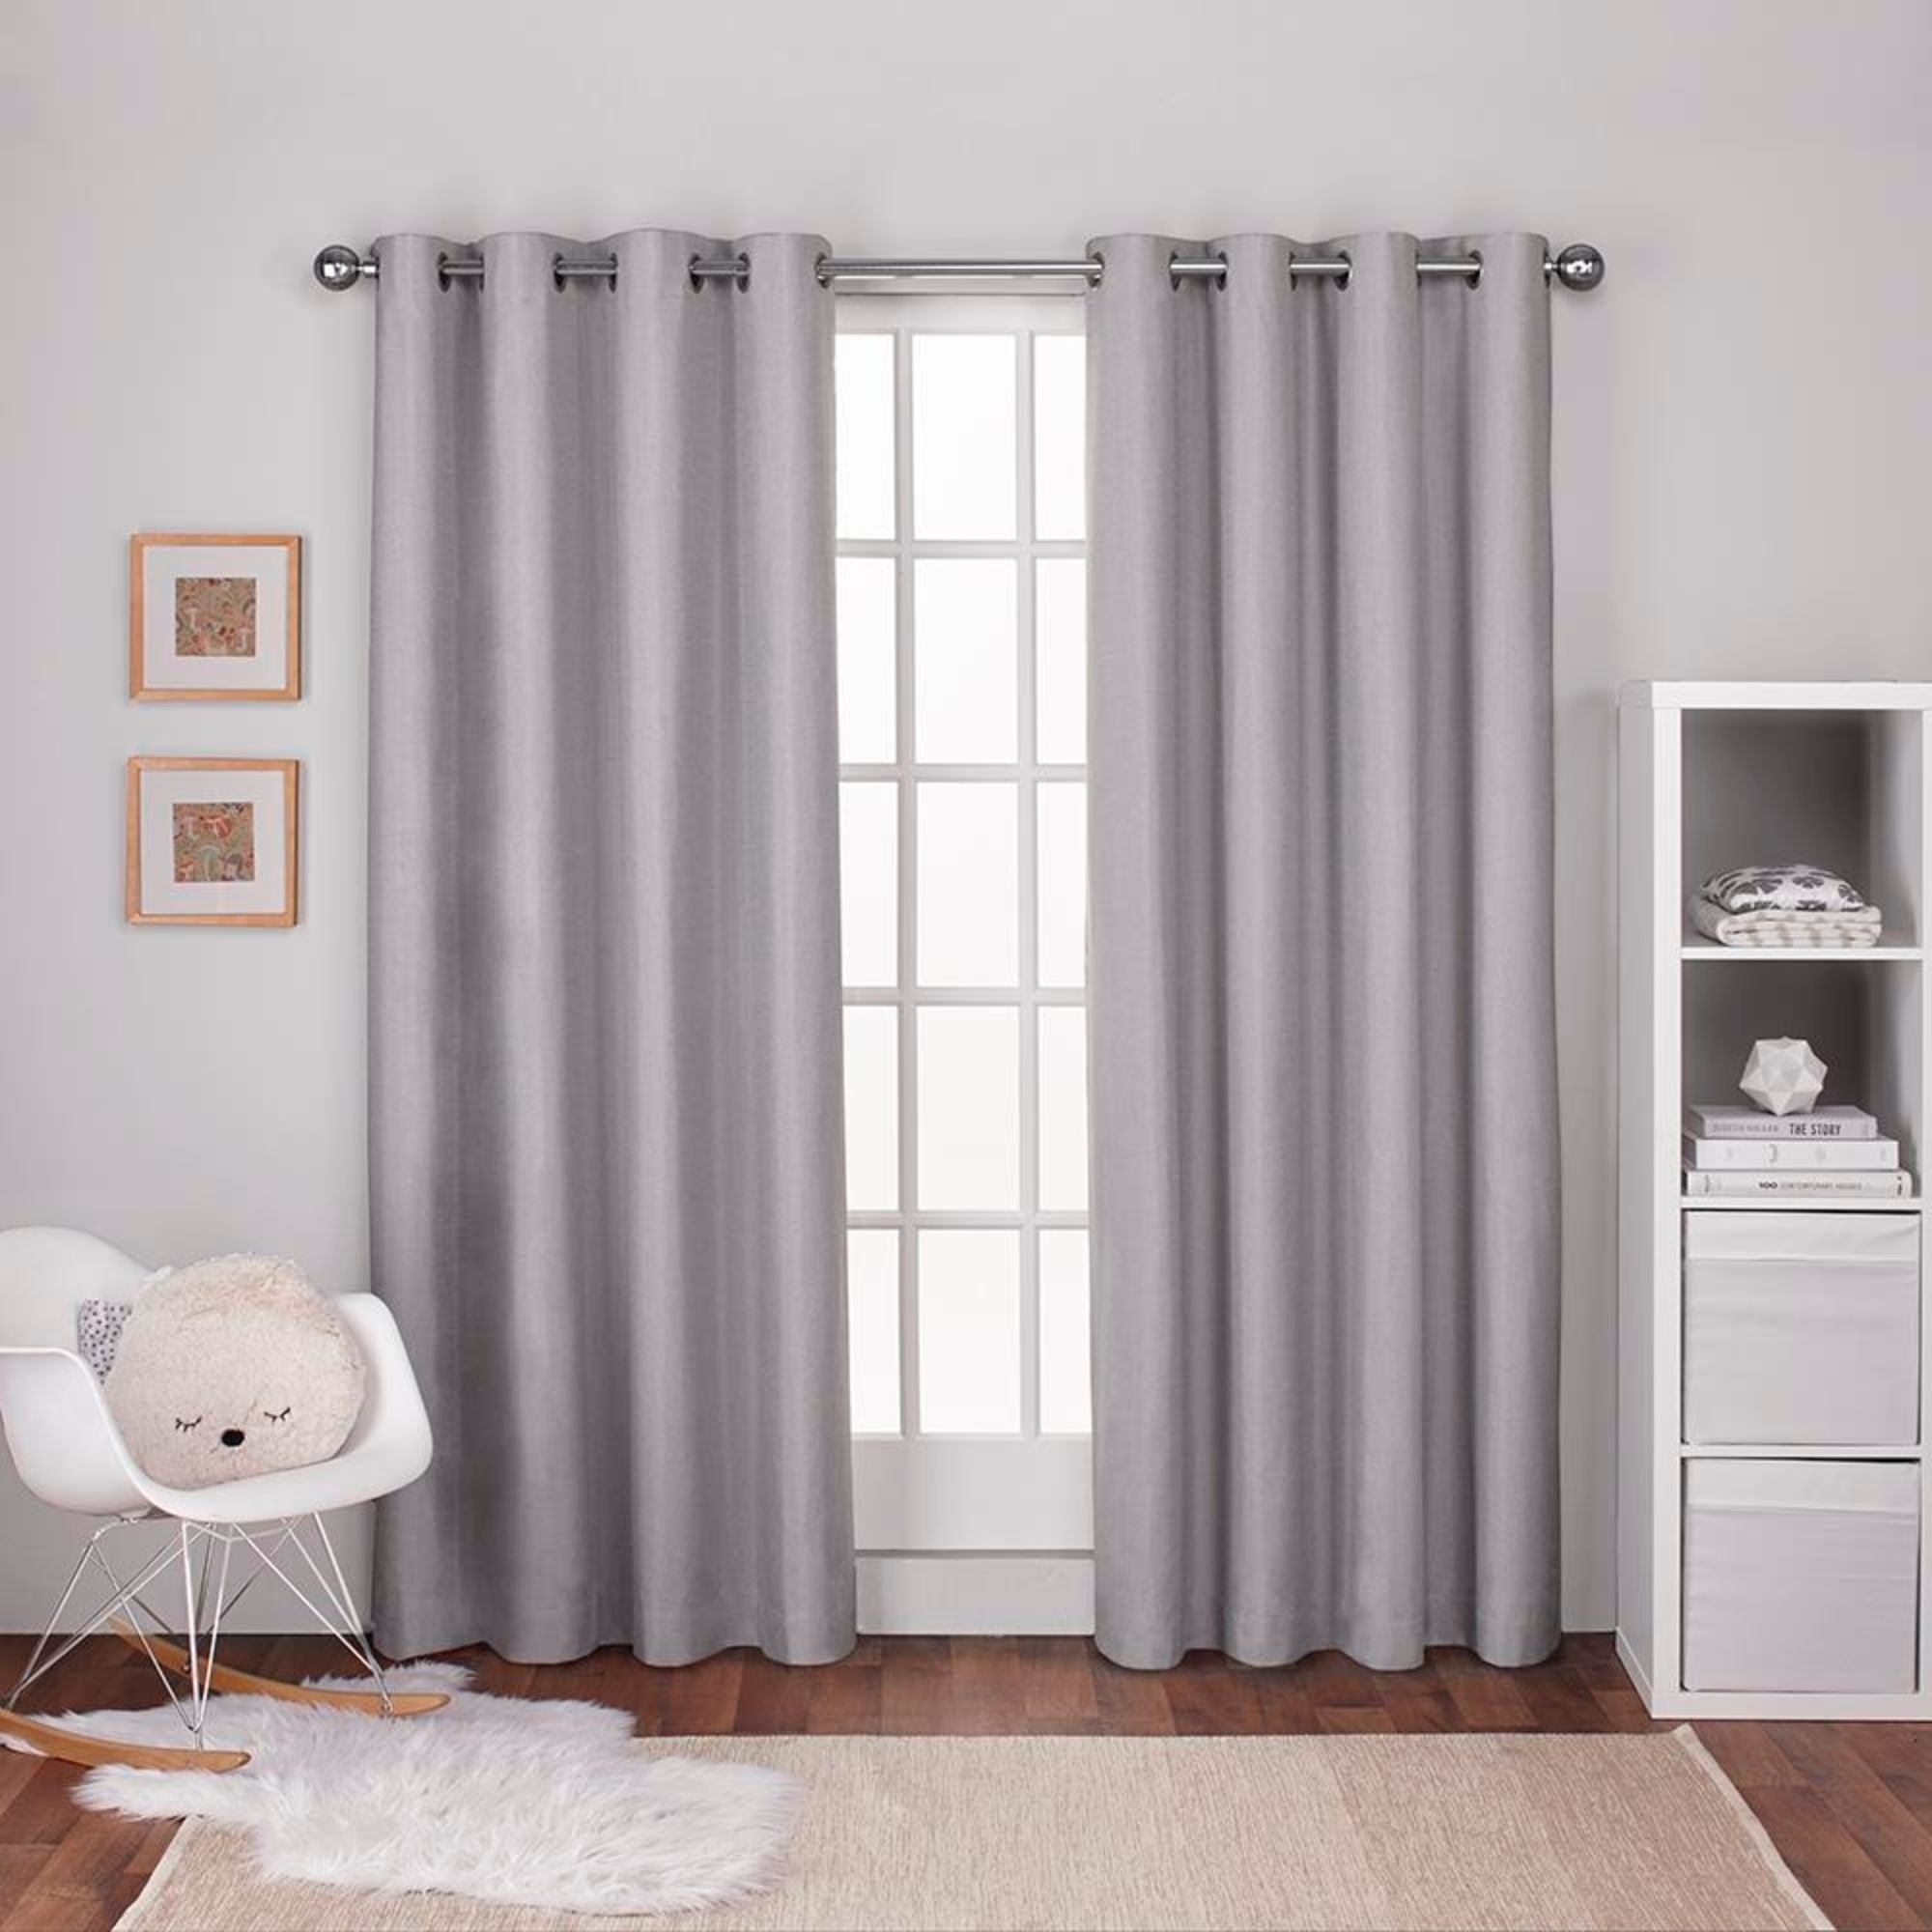 Ati Home Linen Thermal Woven Blackout Grommet Top Curtain Panel Pair In Thermal Woven Blackout Grommet Top Curtain Panel Pairs (View 9 of 30)